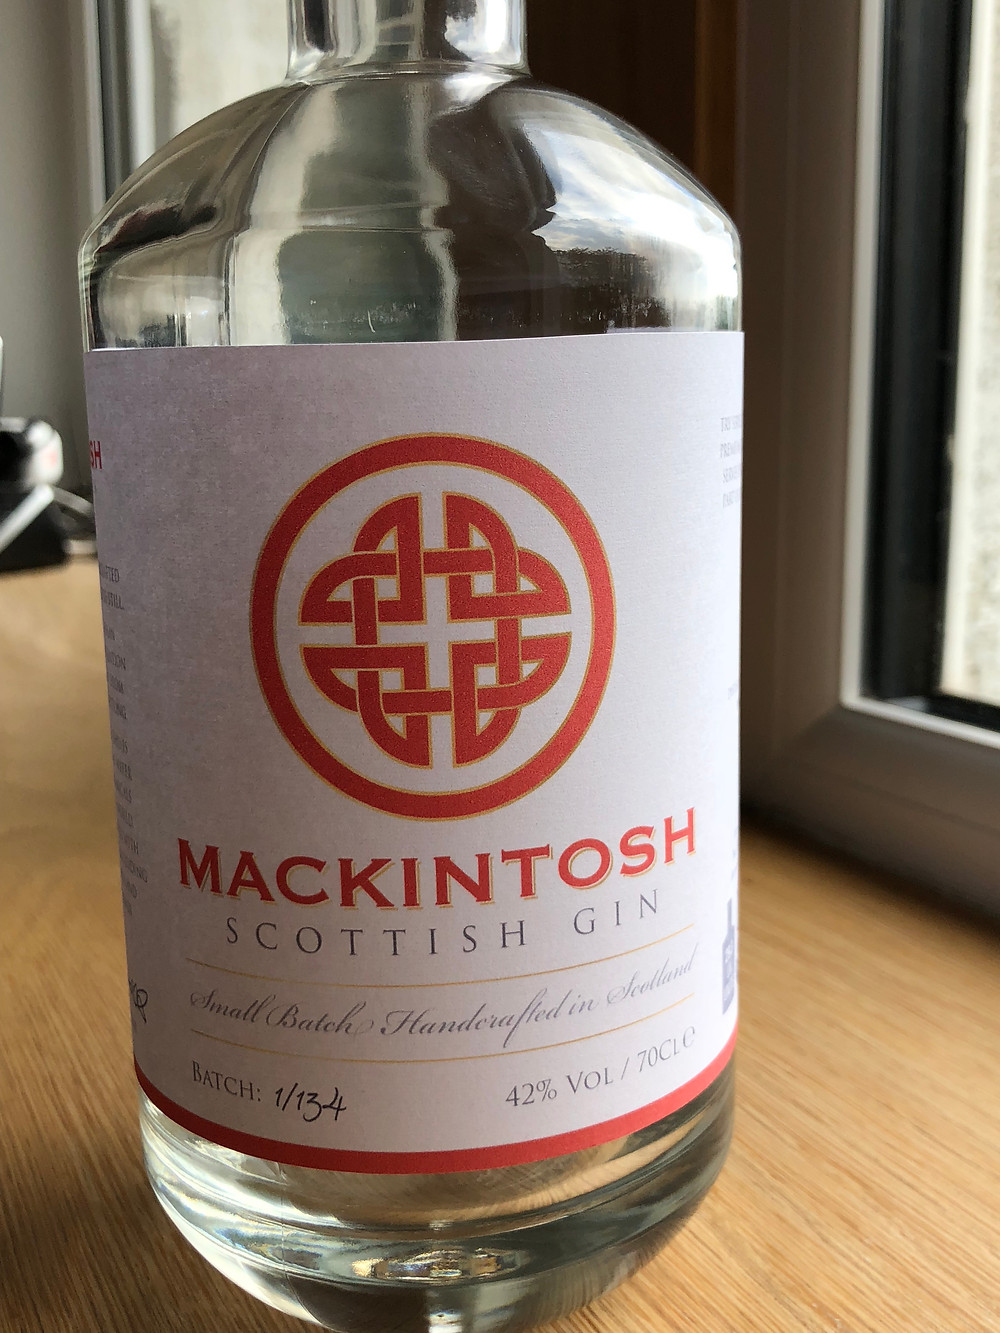 Mackintosh Gin mock up label prior to printing full label